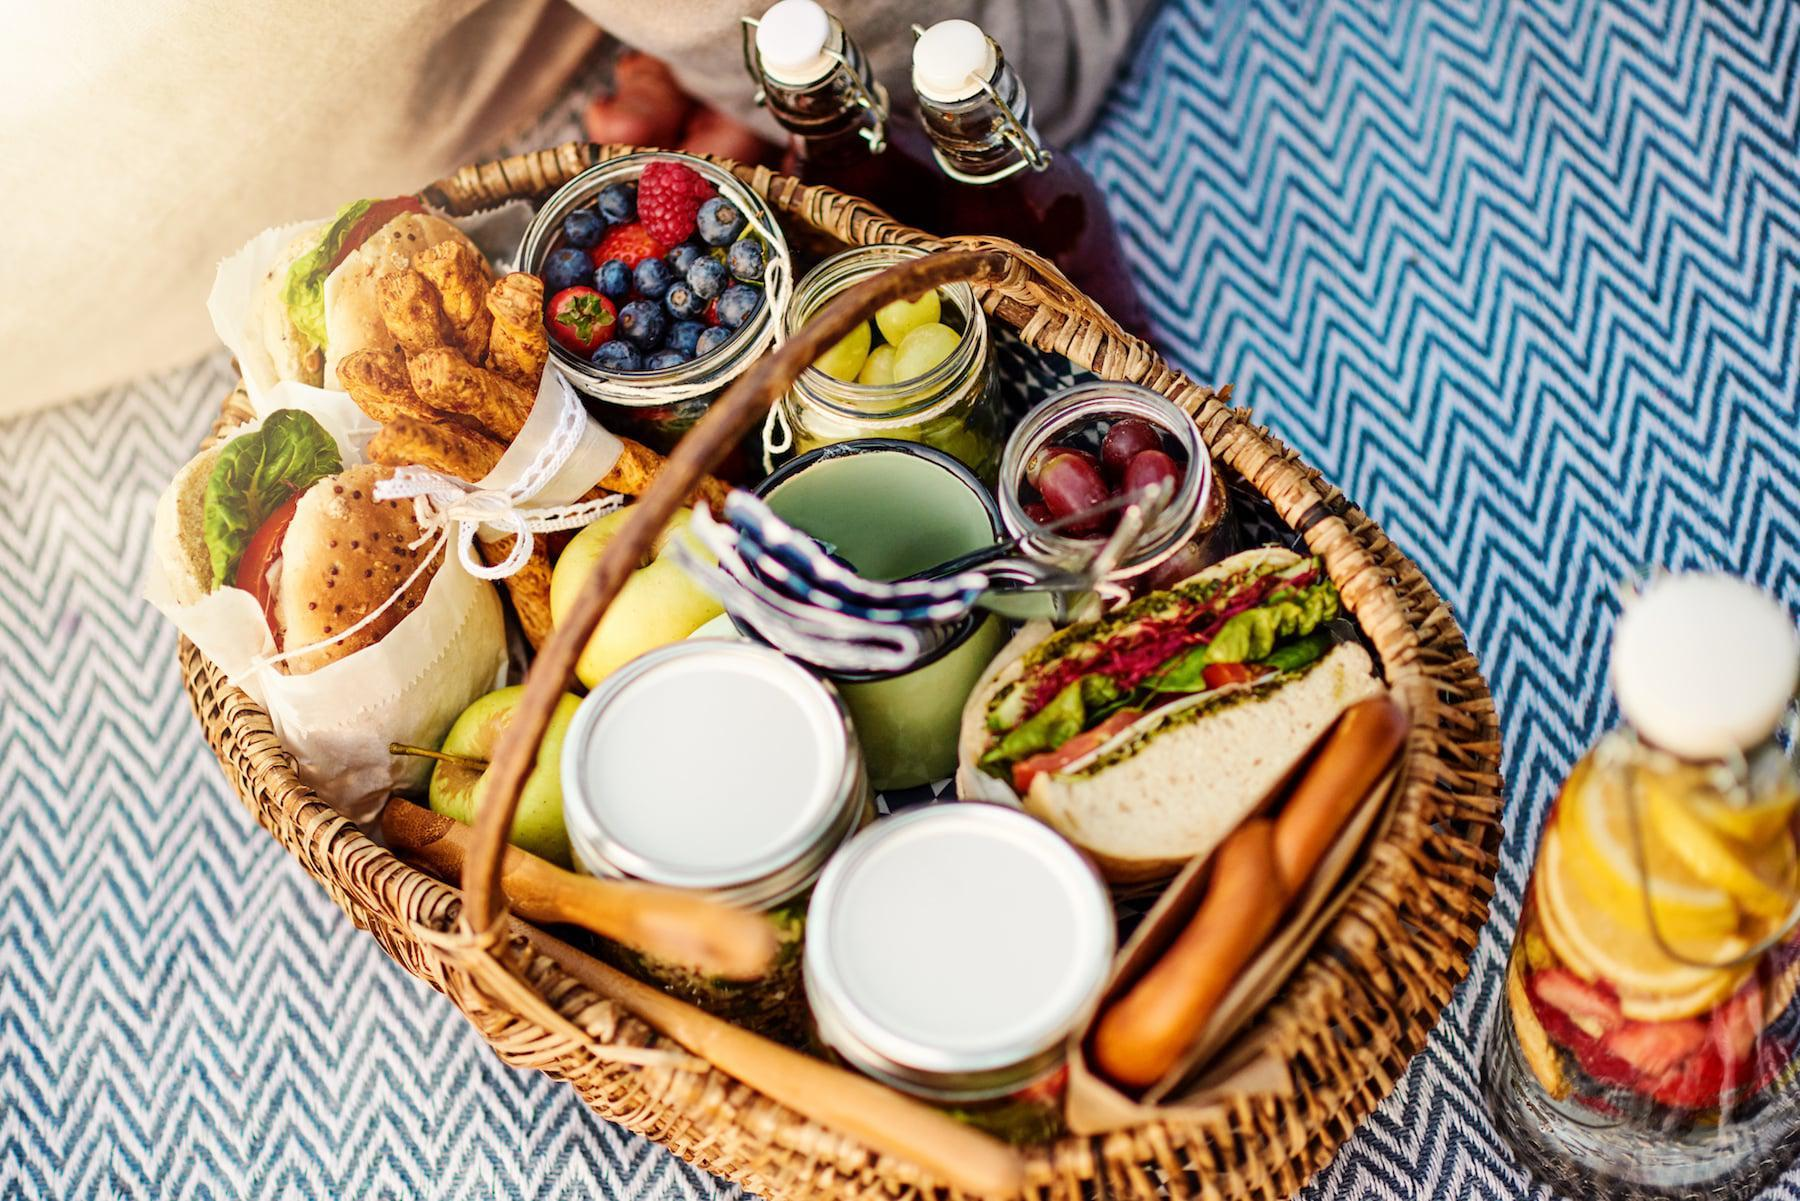 Romantic Picnic Foods for Couples